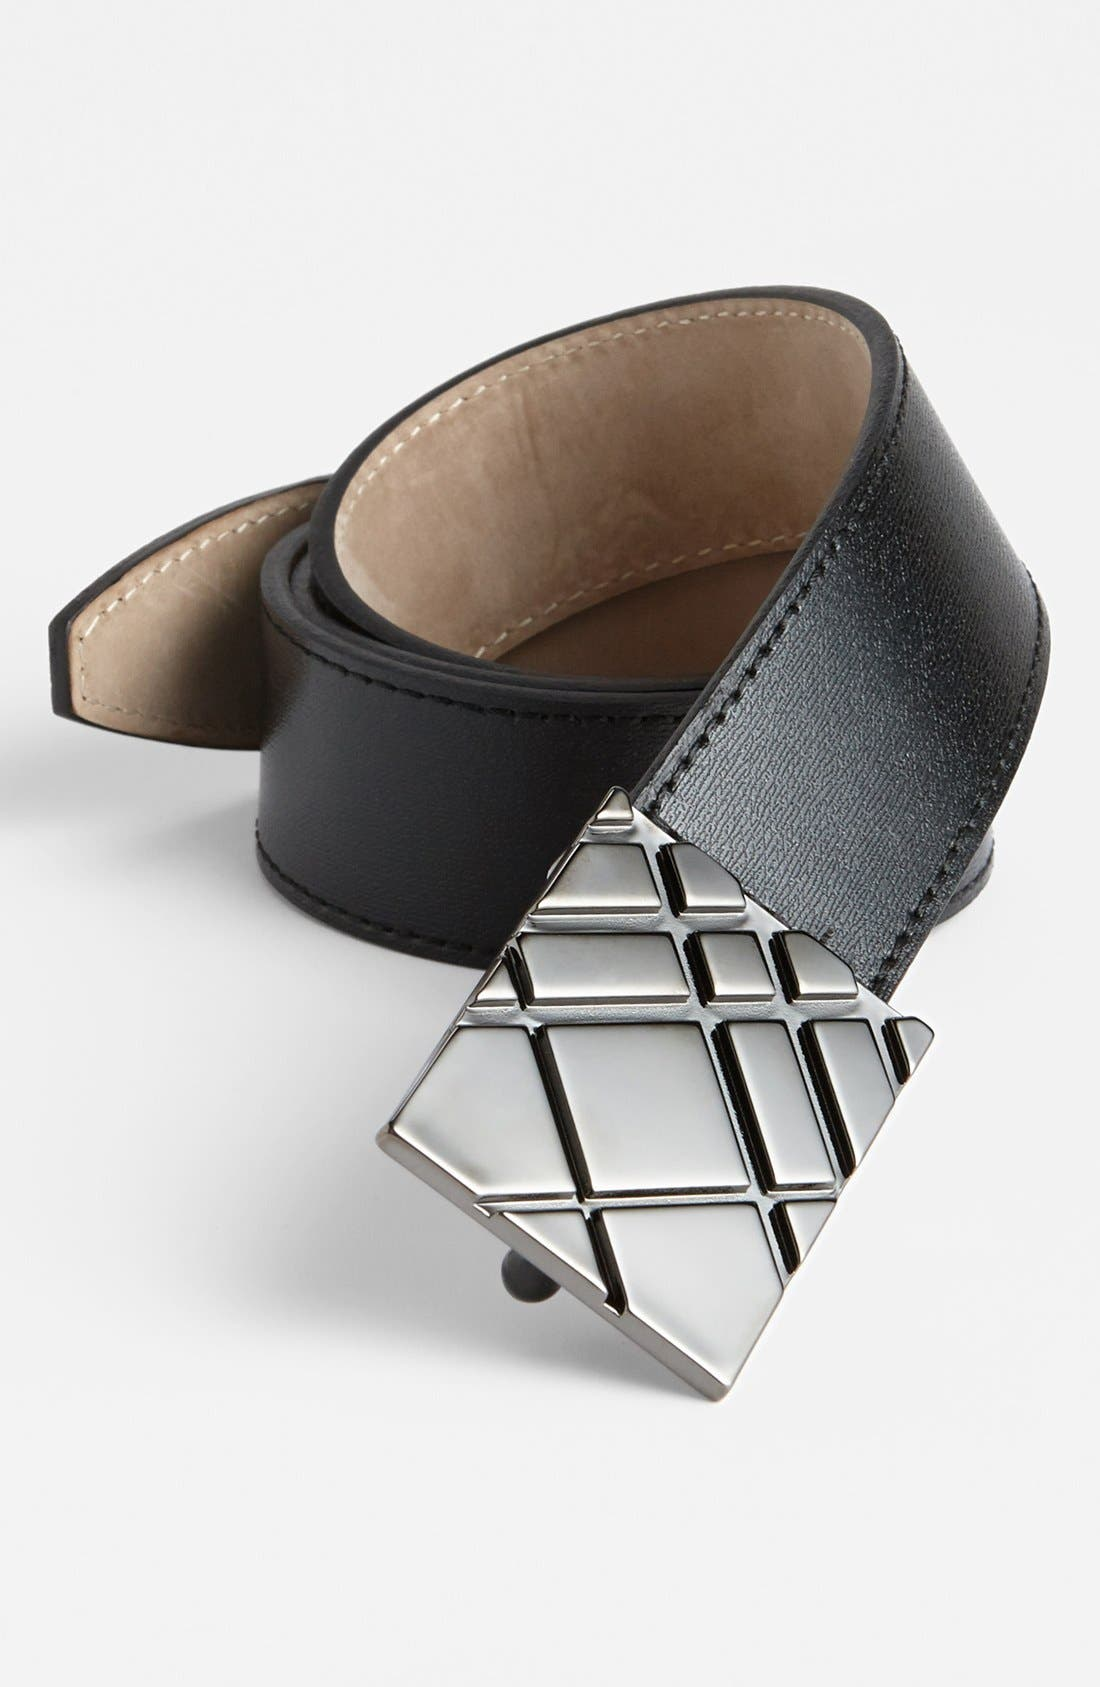 Alternate Image 1 Selected - Burberry 'Derry' Calfskin Leather Belt